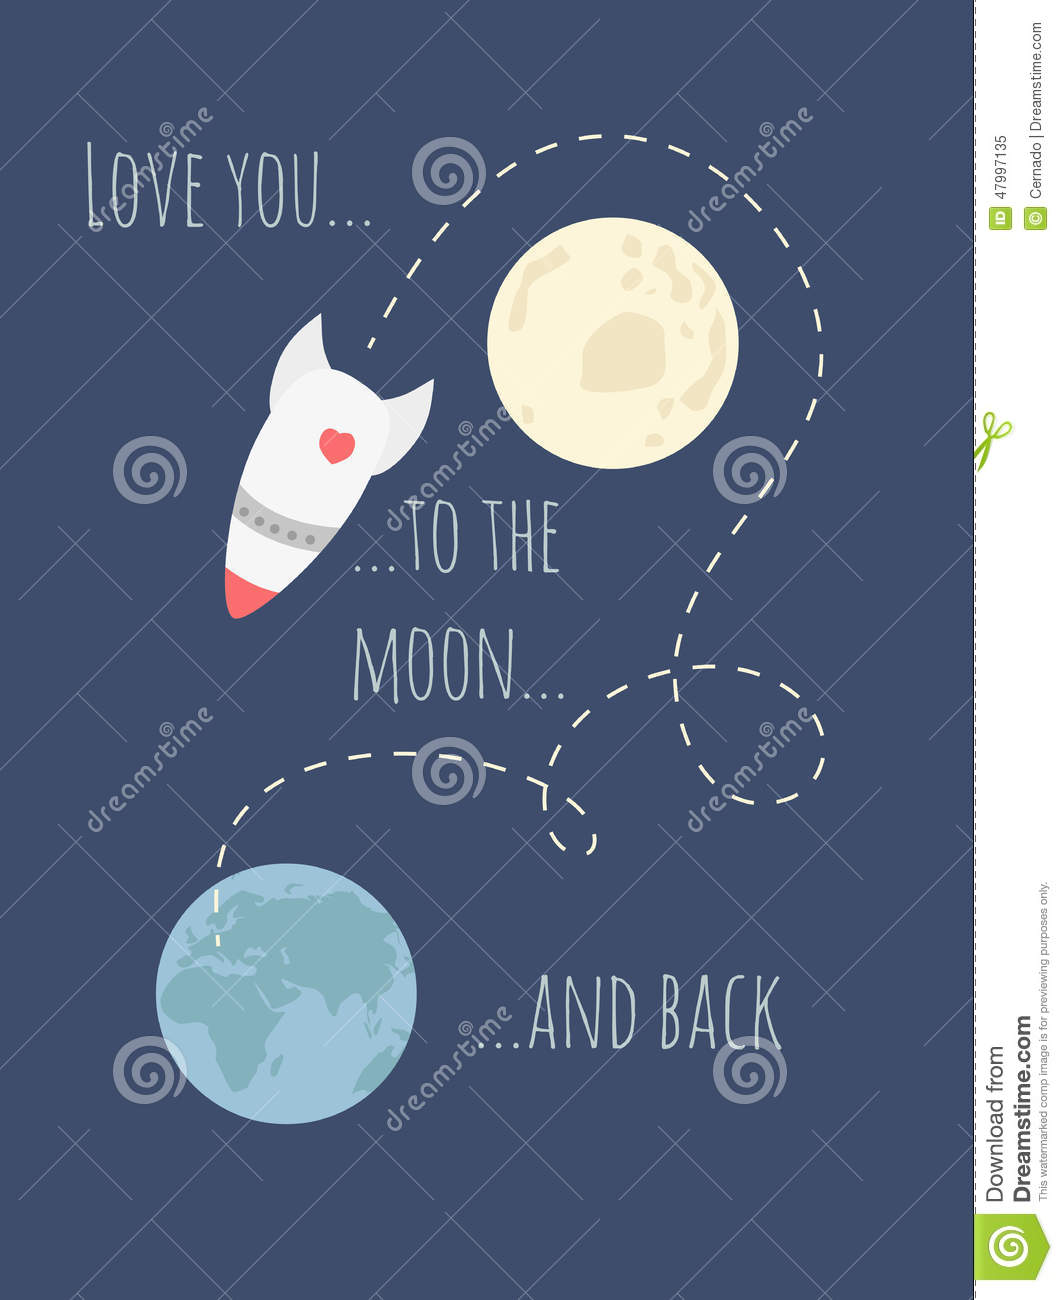 valentines day meme for a broken heat - Love You To The Moon And Back Stock Illustration Image